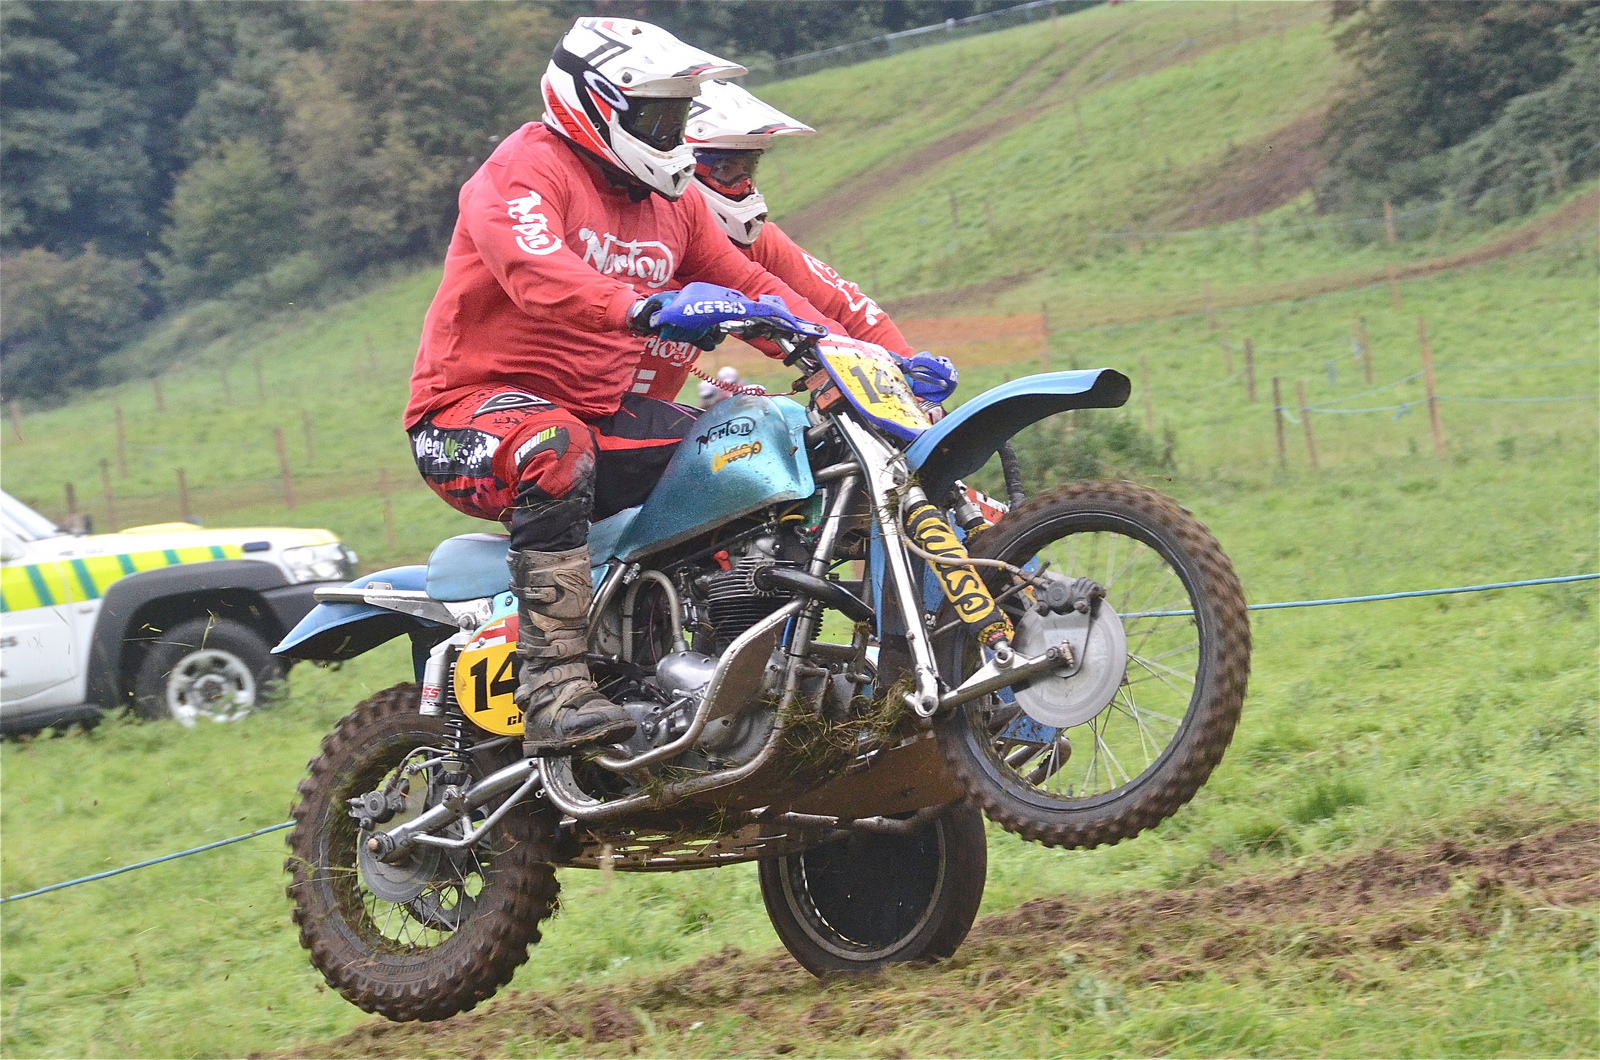 Llanthony Classic Scramble Photos September 2015 classicdirtbikerider.com..7